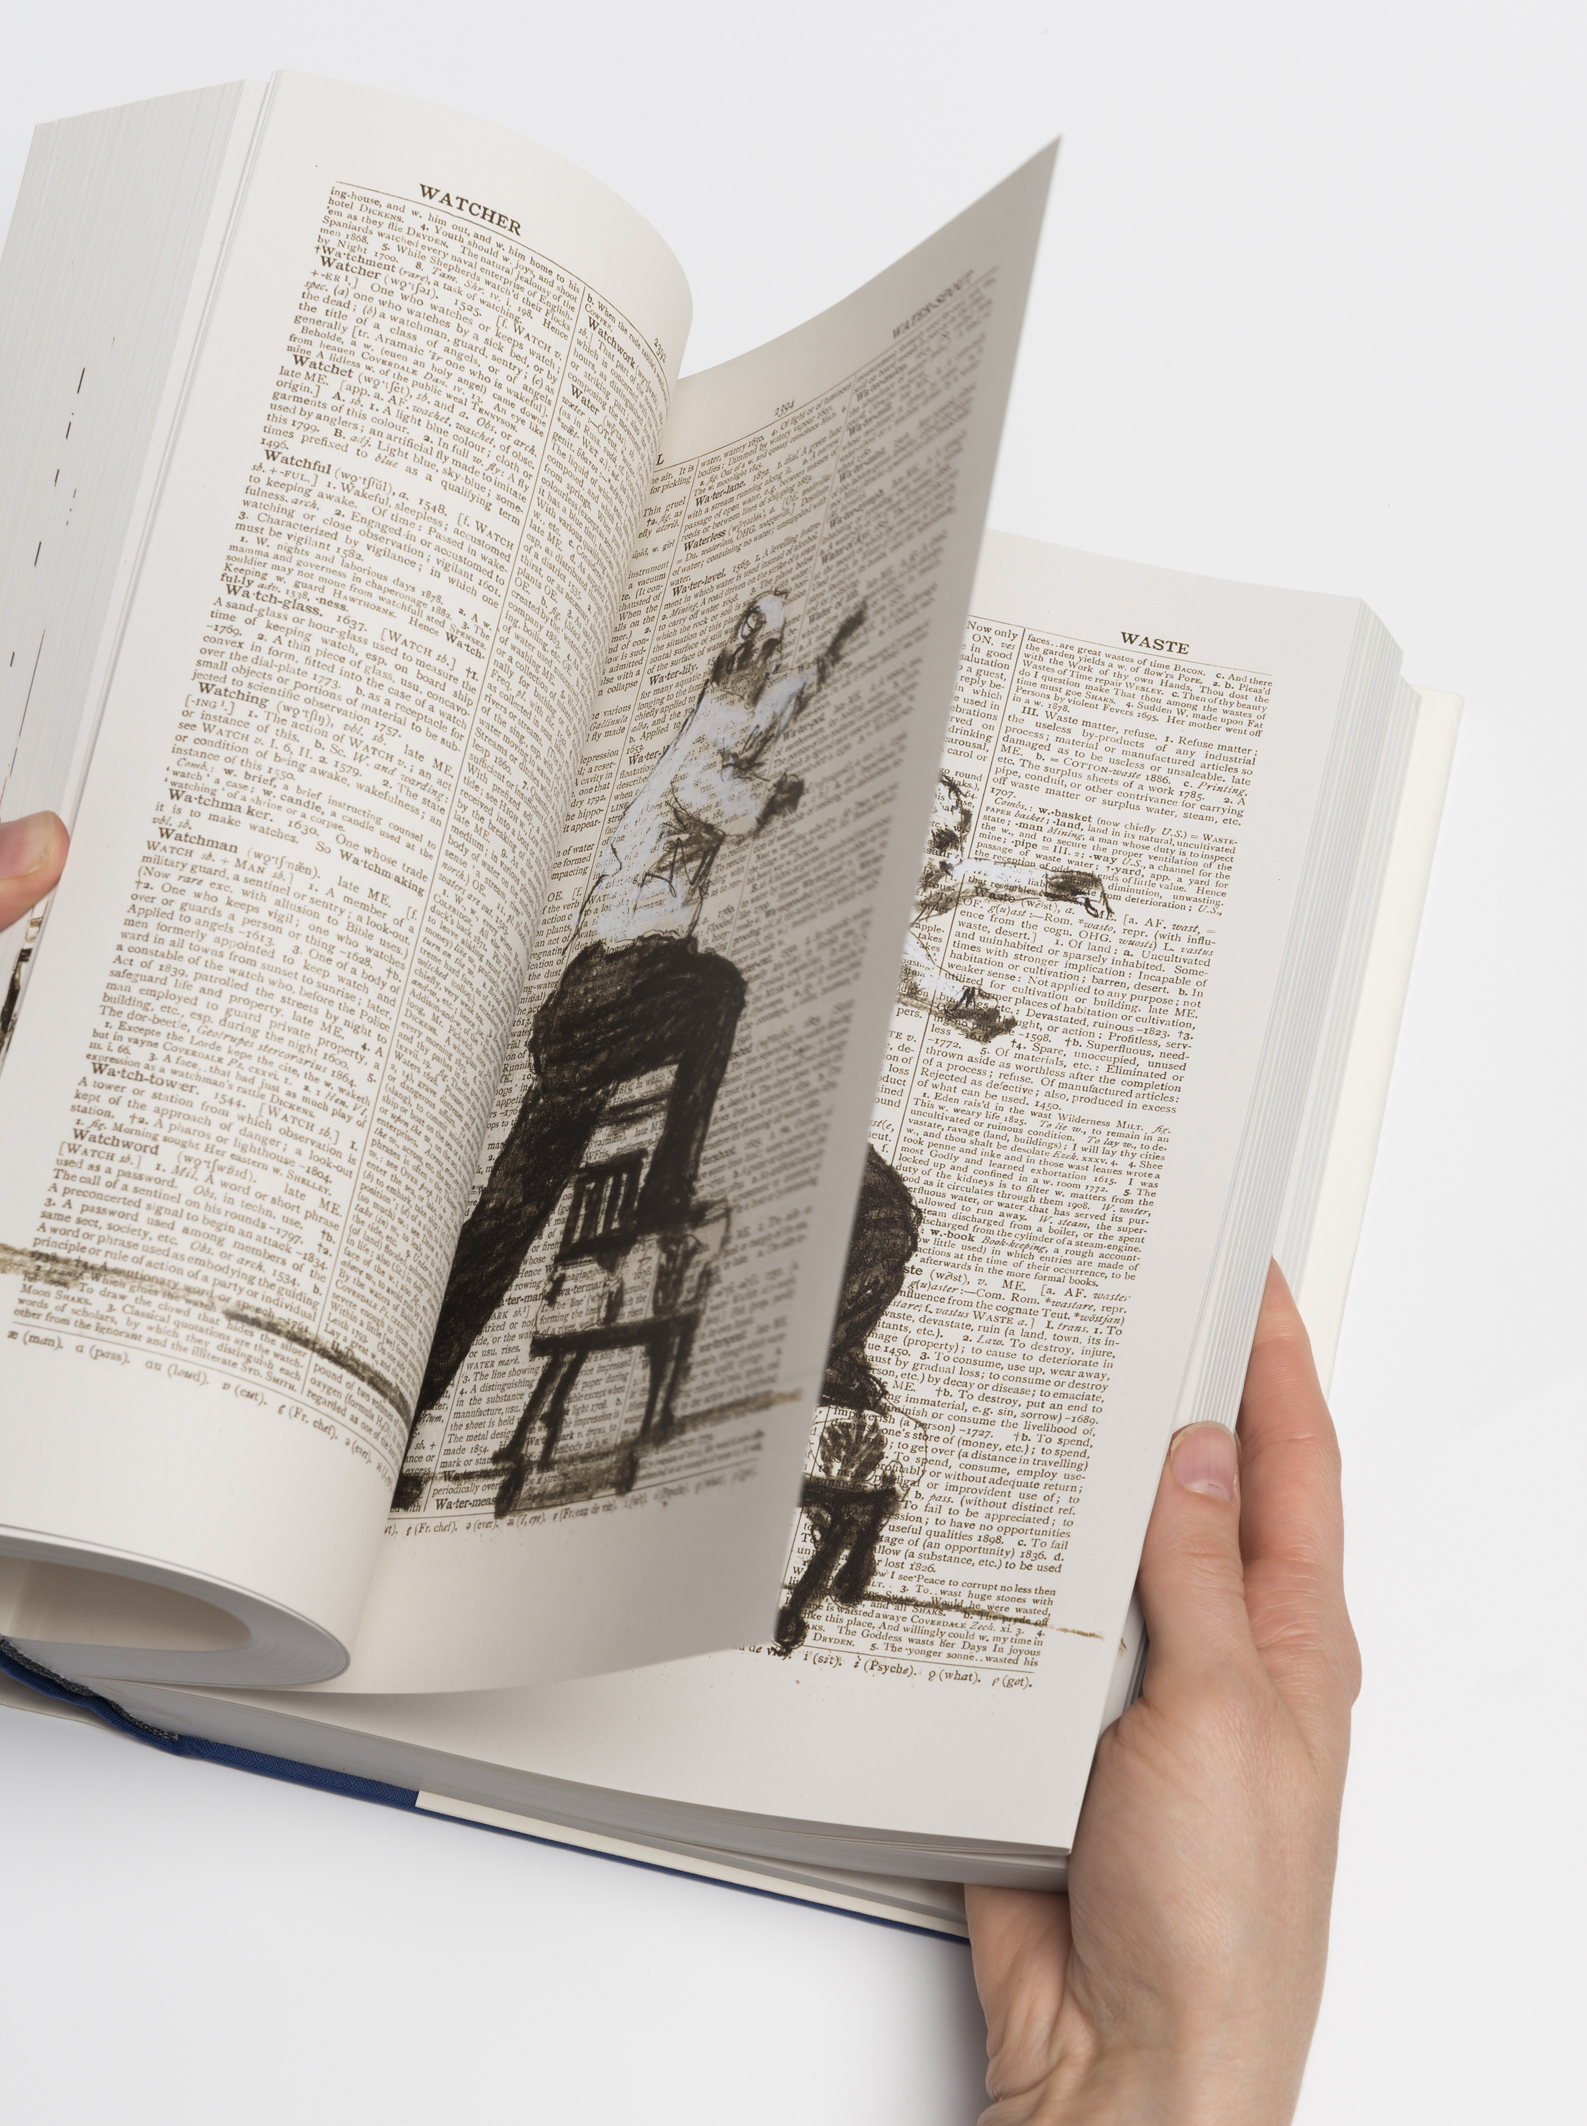 William_Kentridge,_2nd_hand_reading[1].jpg